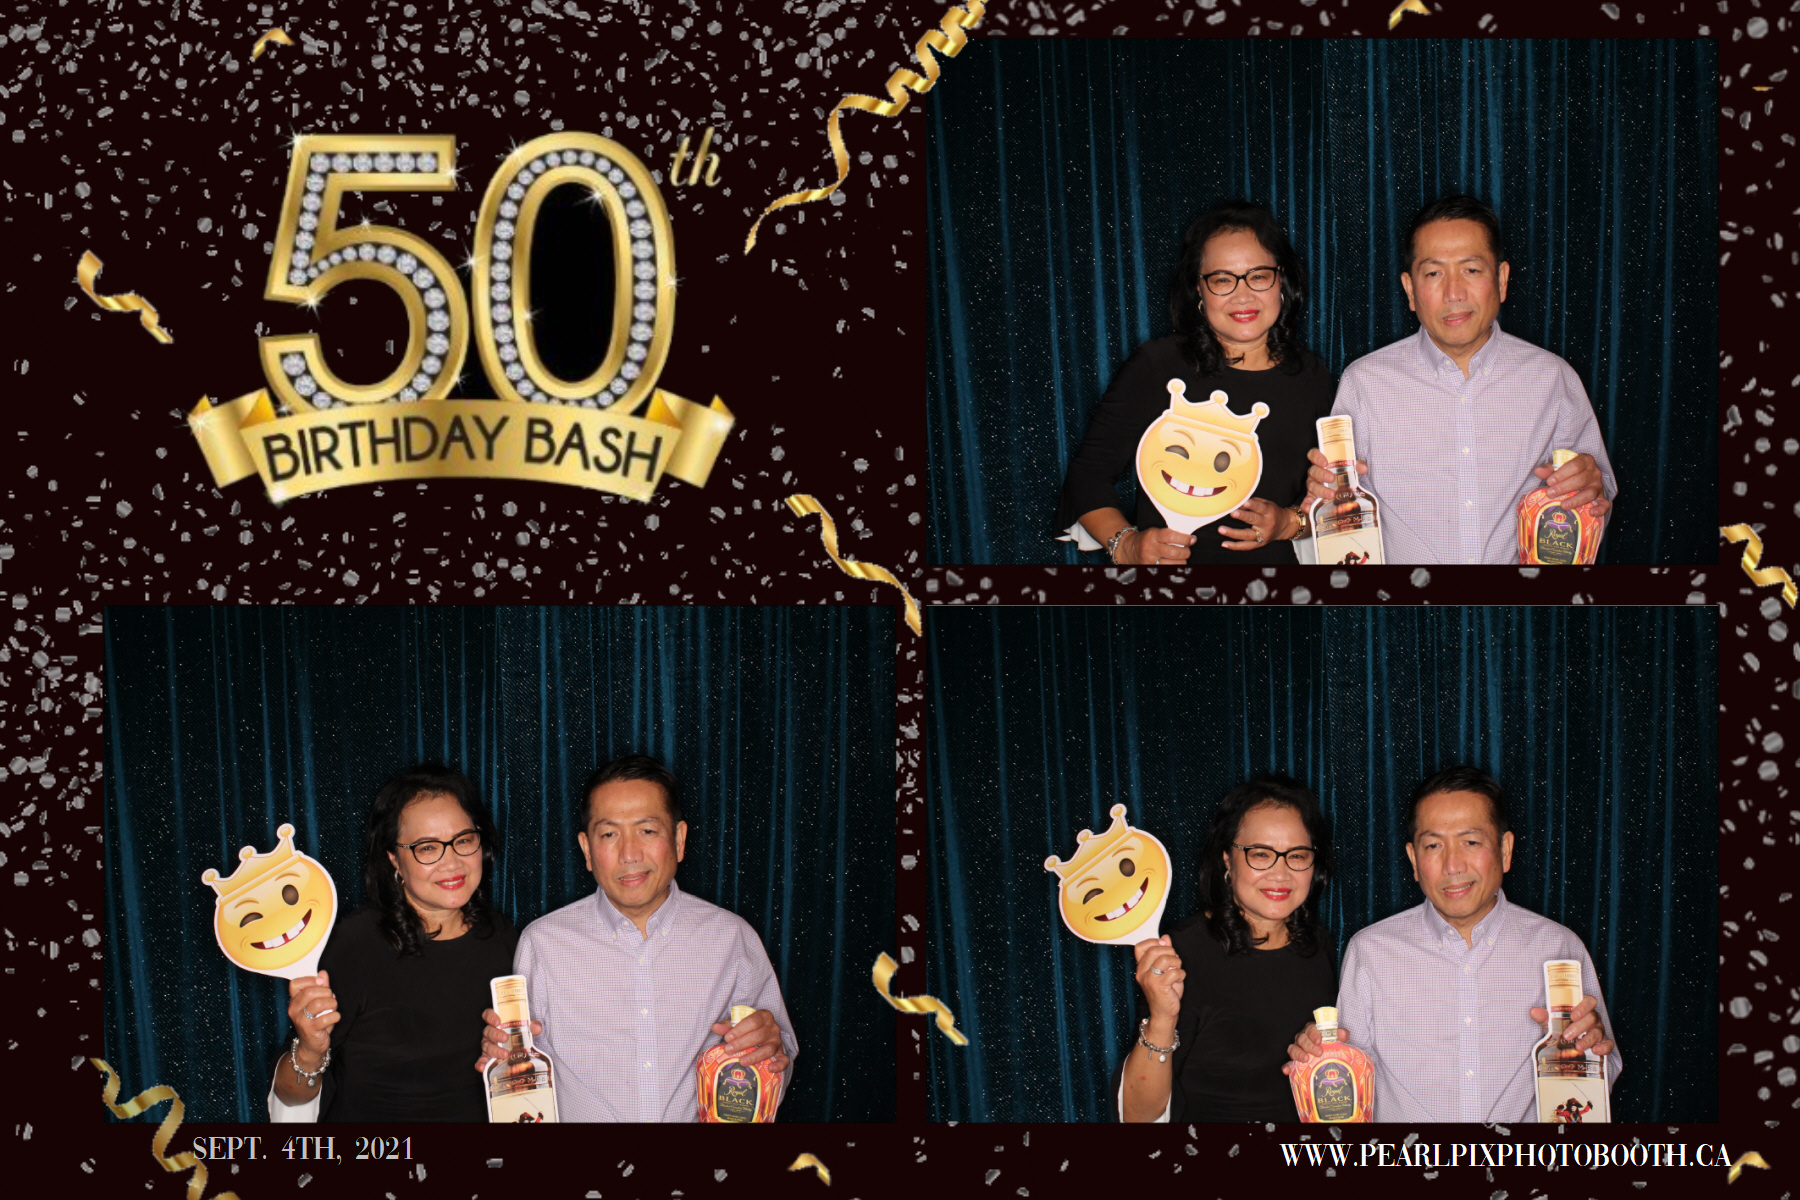 Peter_s 50th Bday_34